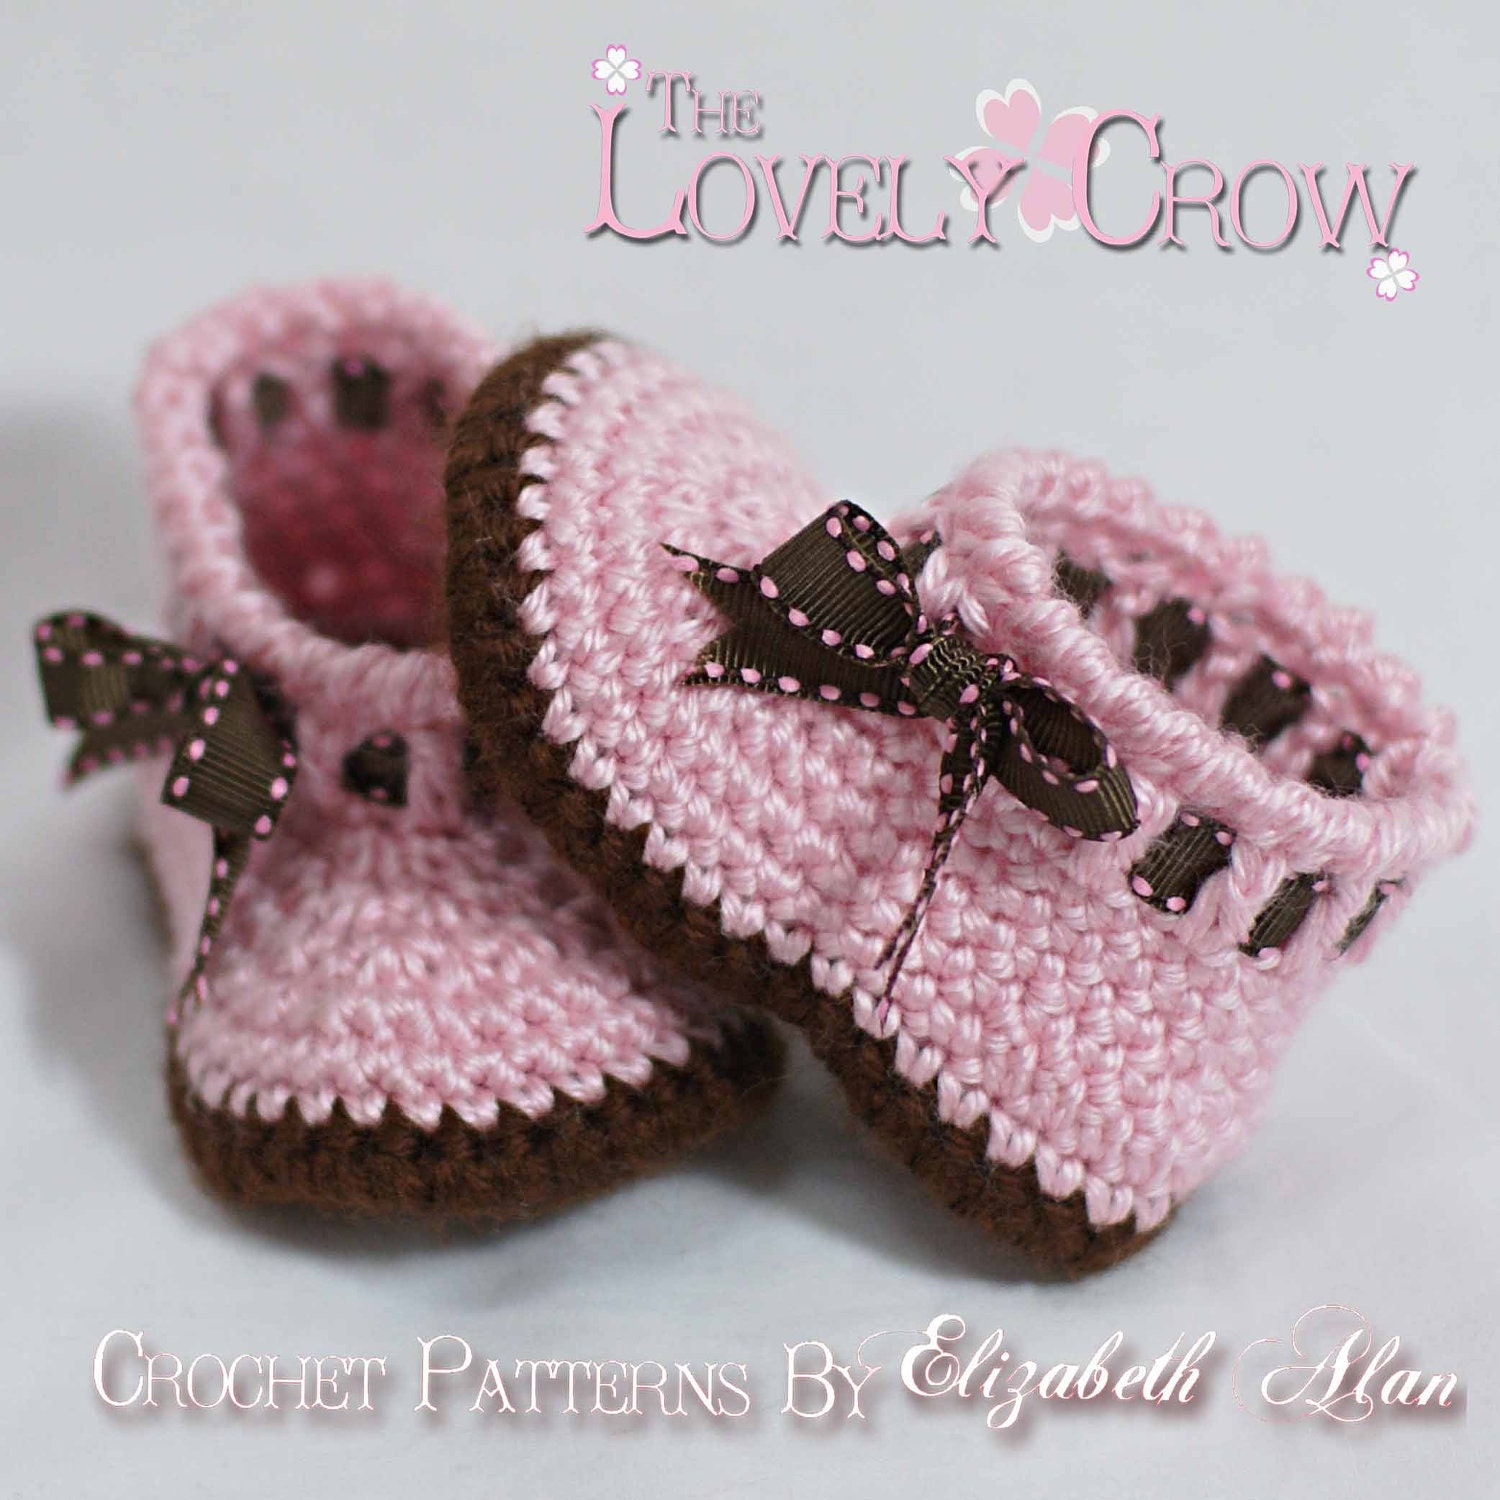 Crochet Patterns Slippers : SLIPPER PATTERN CROCHET - Easy Crochet Patterns